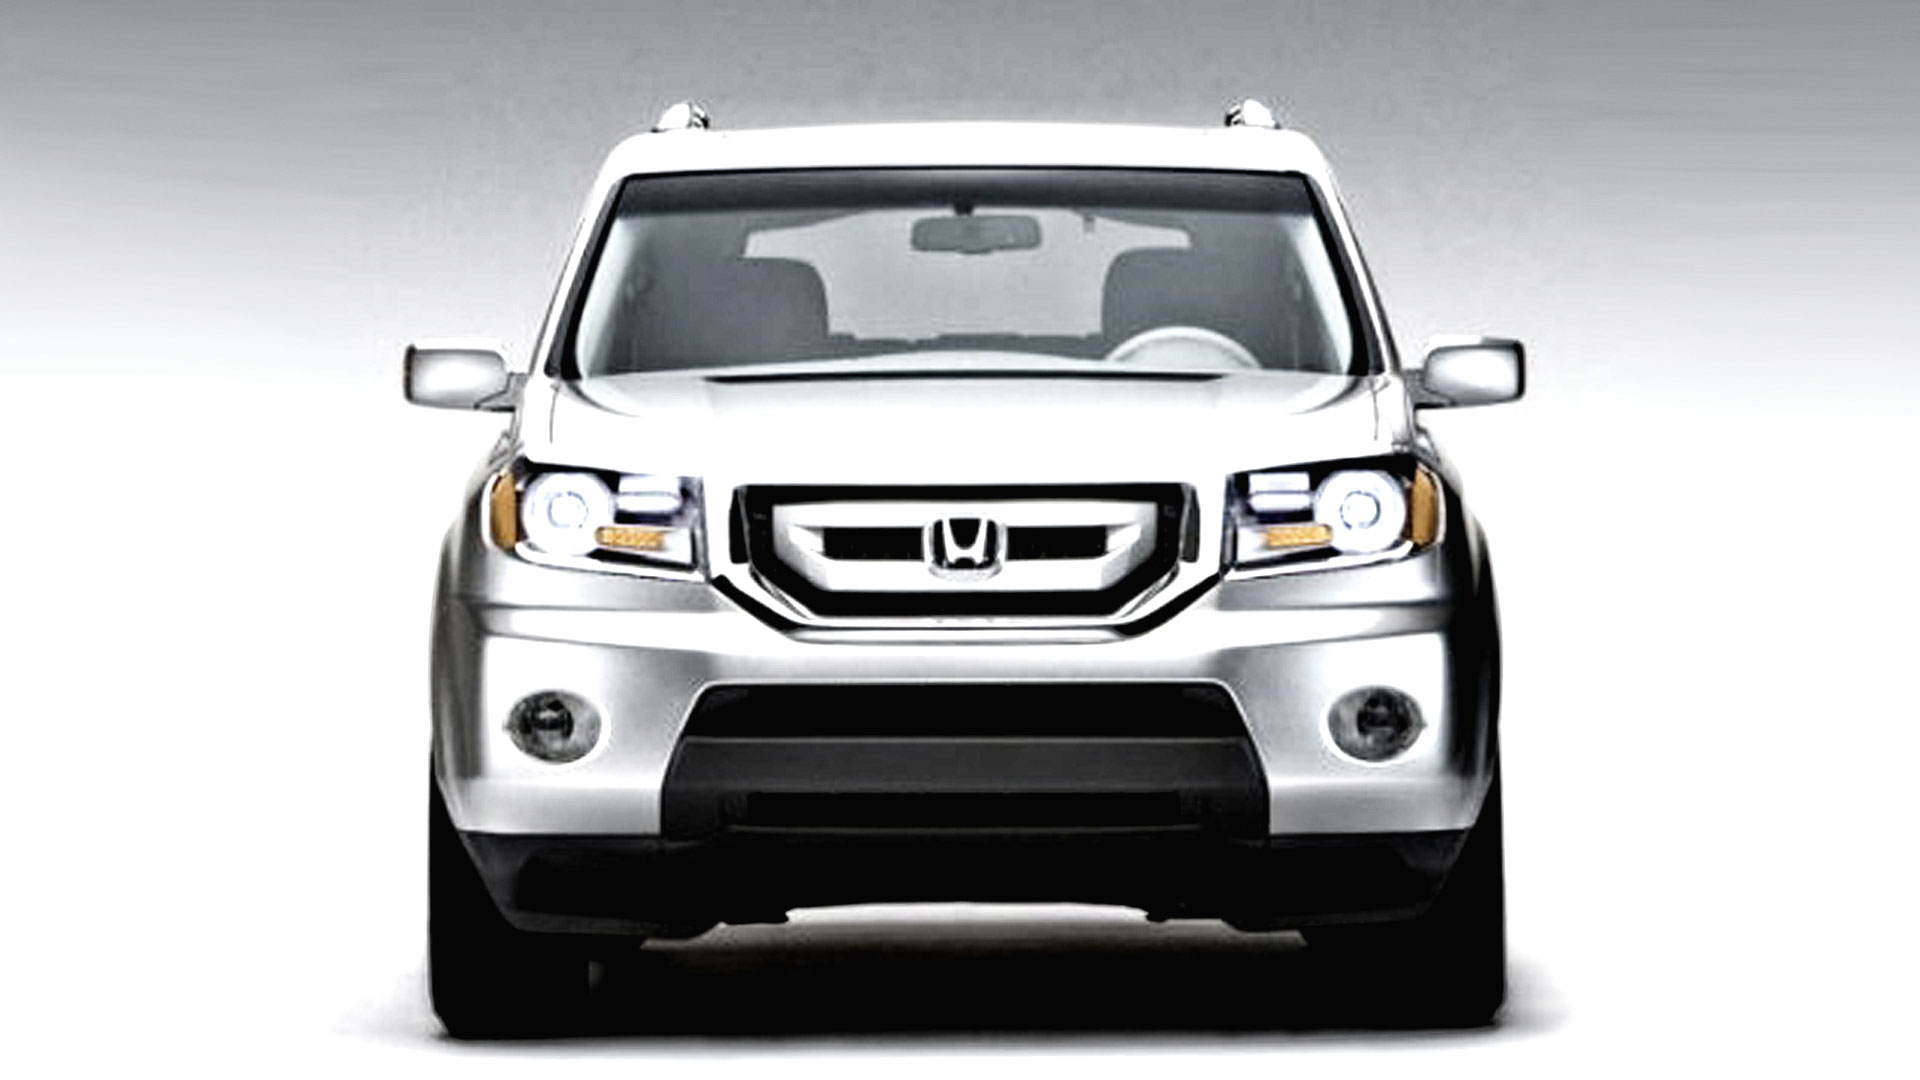 Honda Pilot Review and Specs free download image